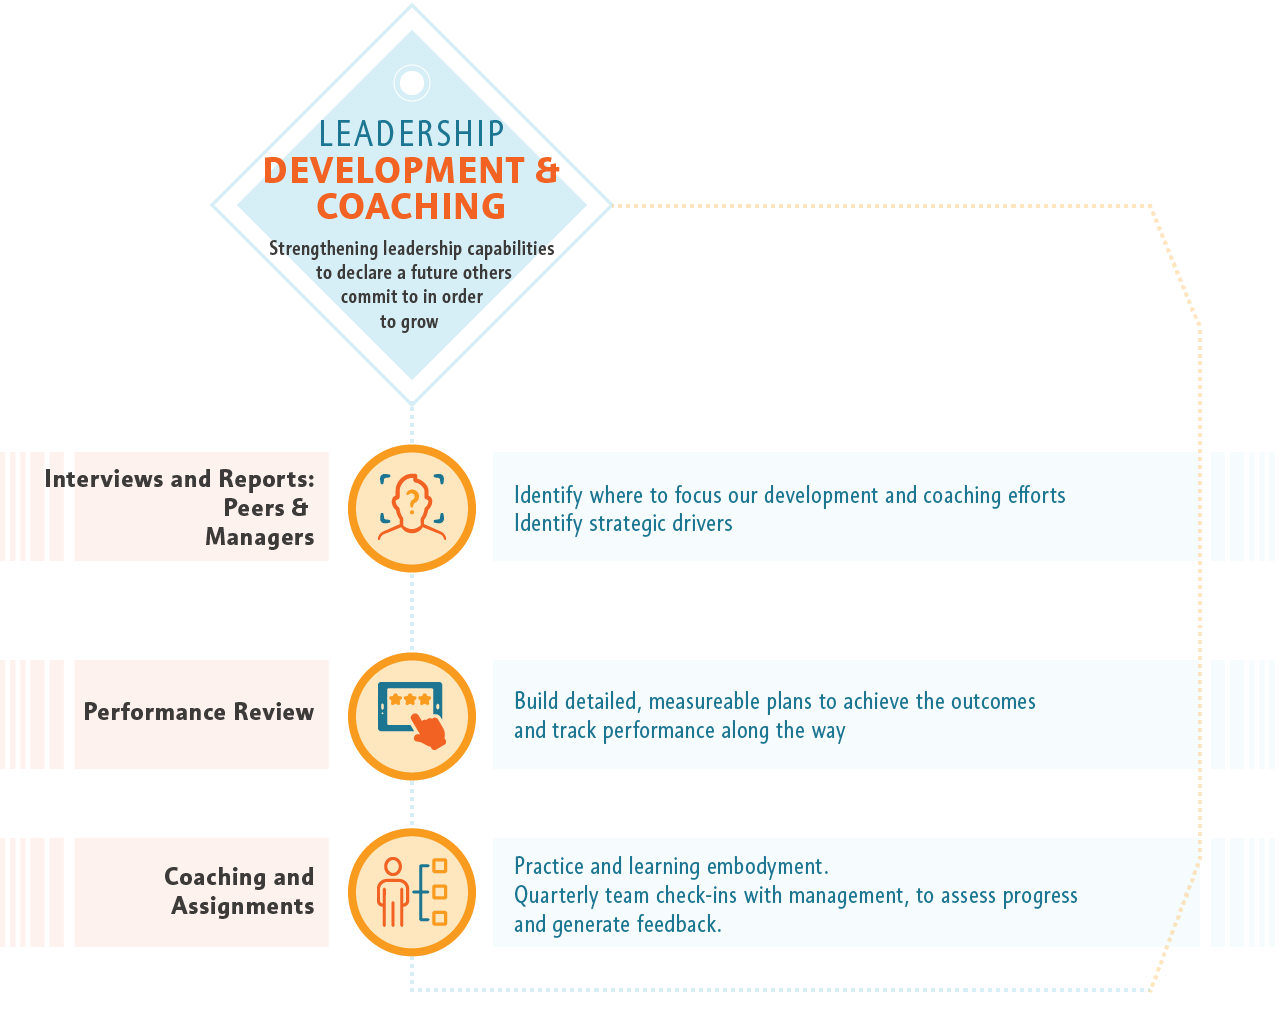 Leader Development ↦ Coaching